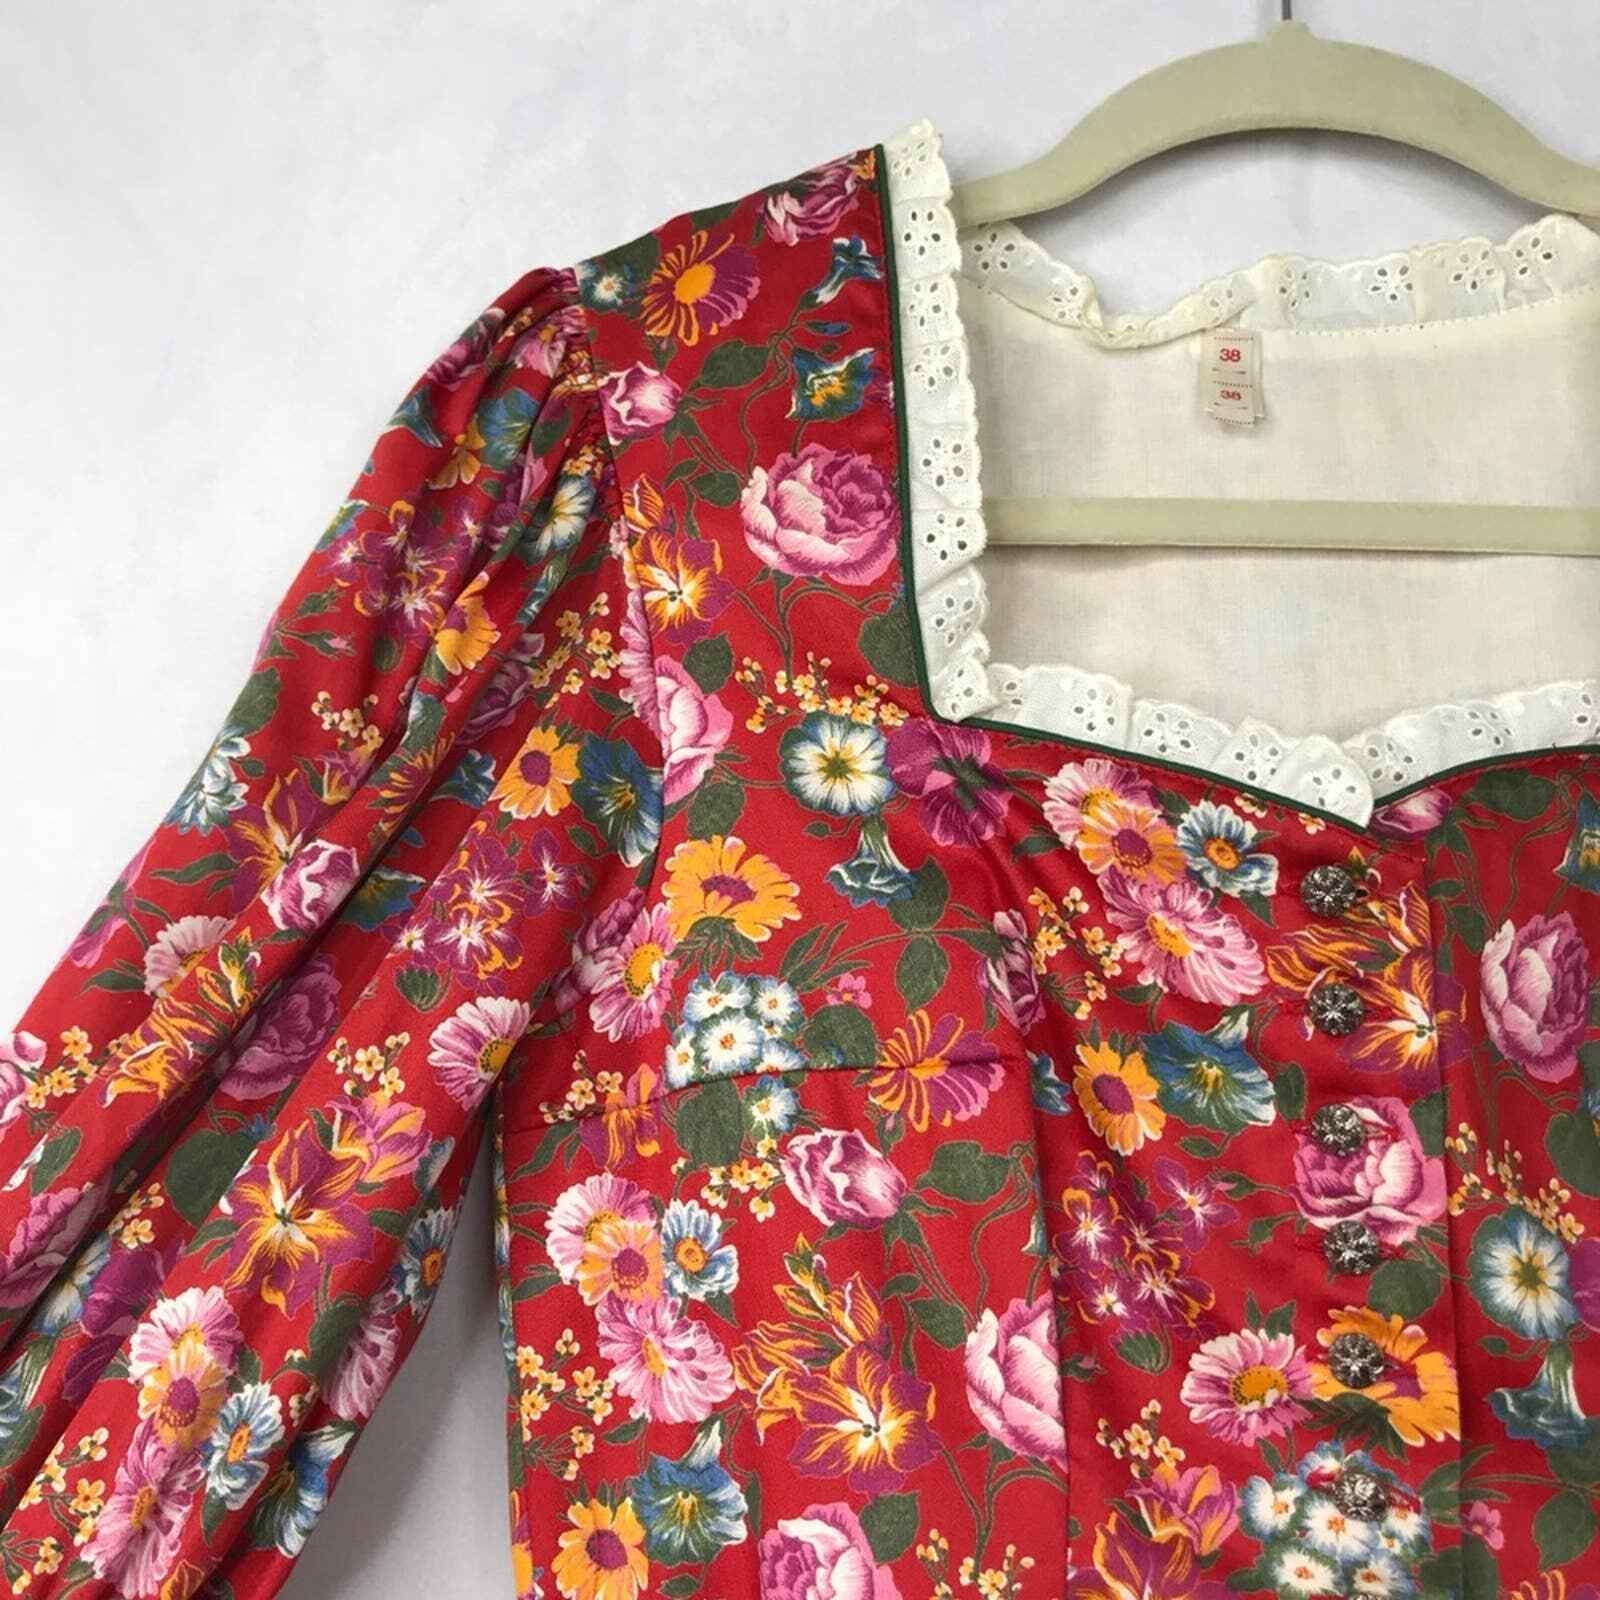 60s Style cottagecore floral prairie pleated dress - image 7